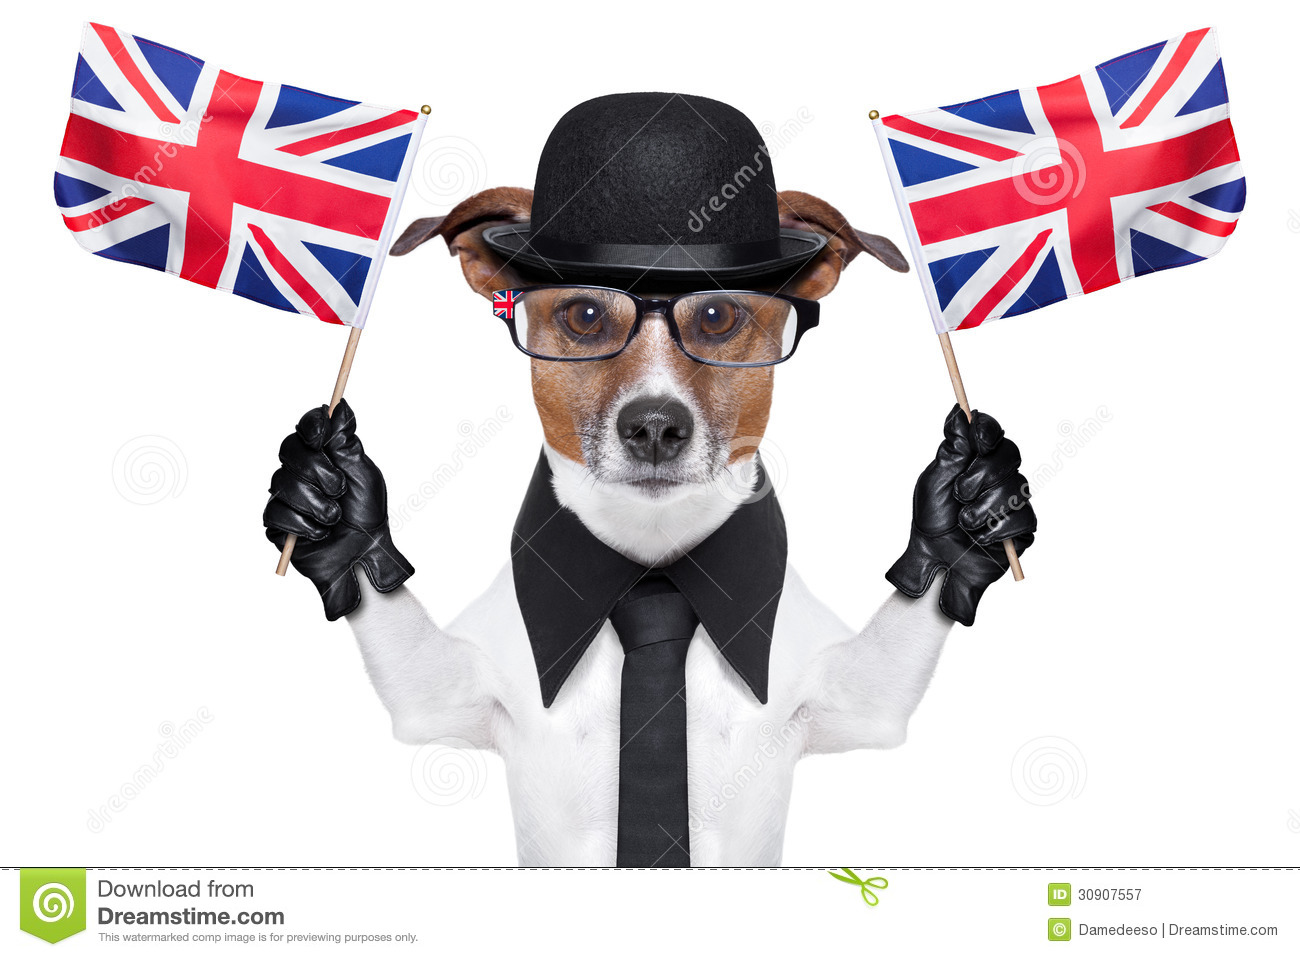 British dog with black bowler hat and black suit waving flags.